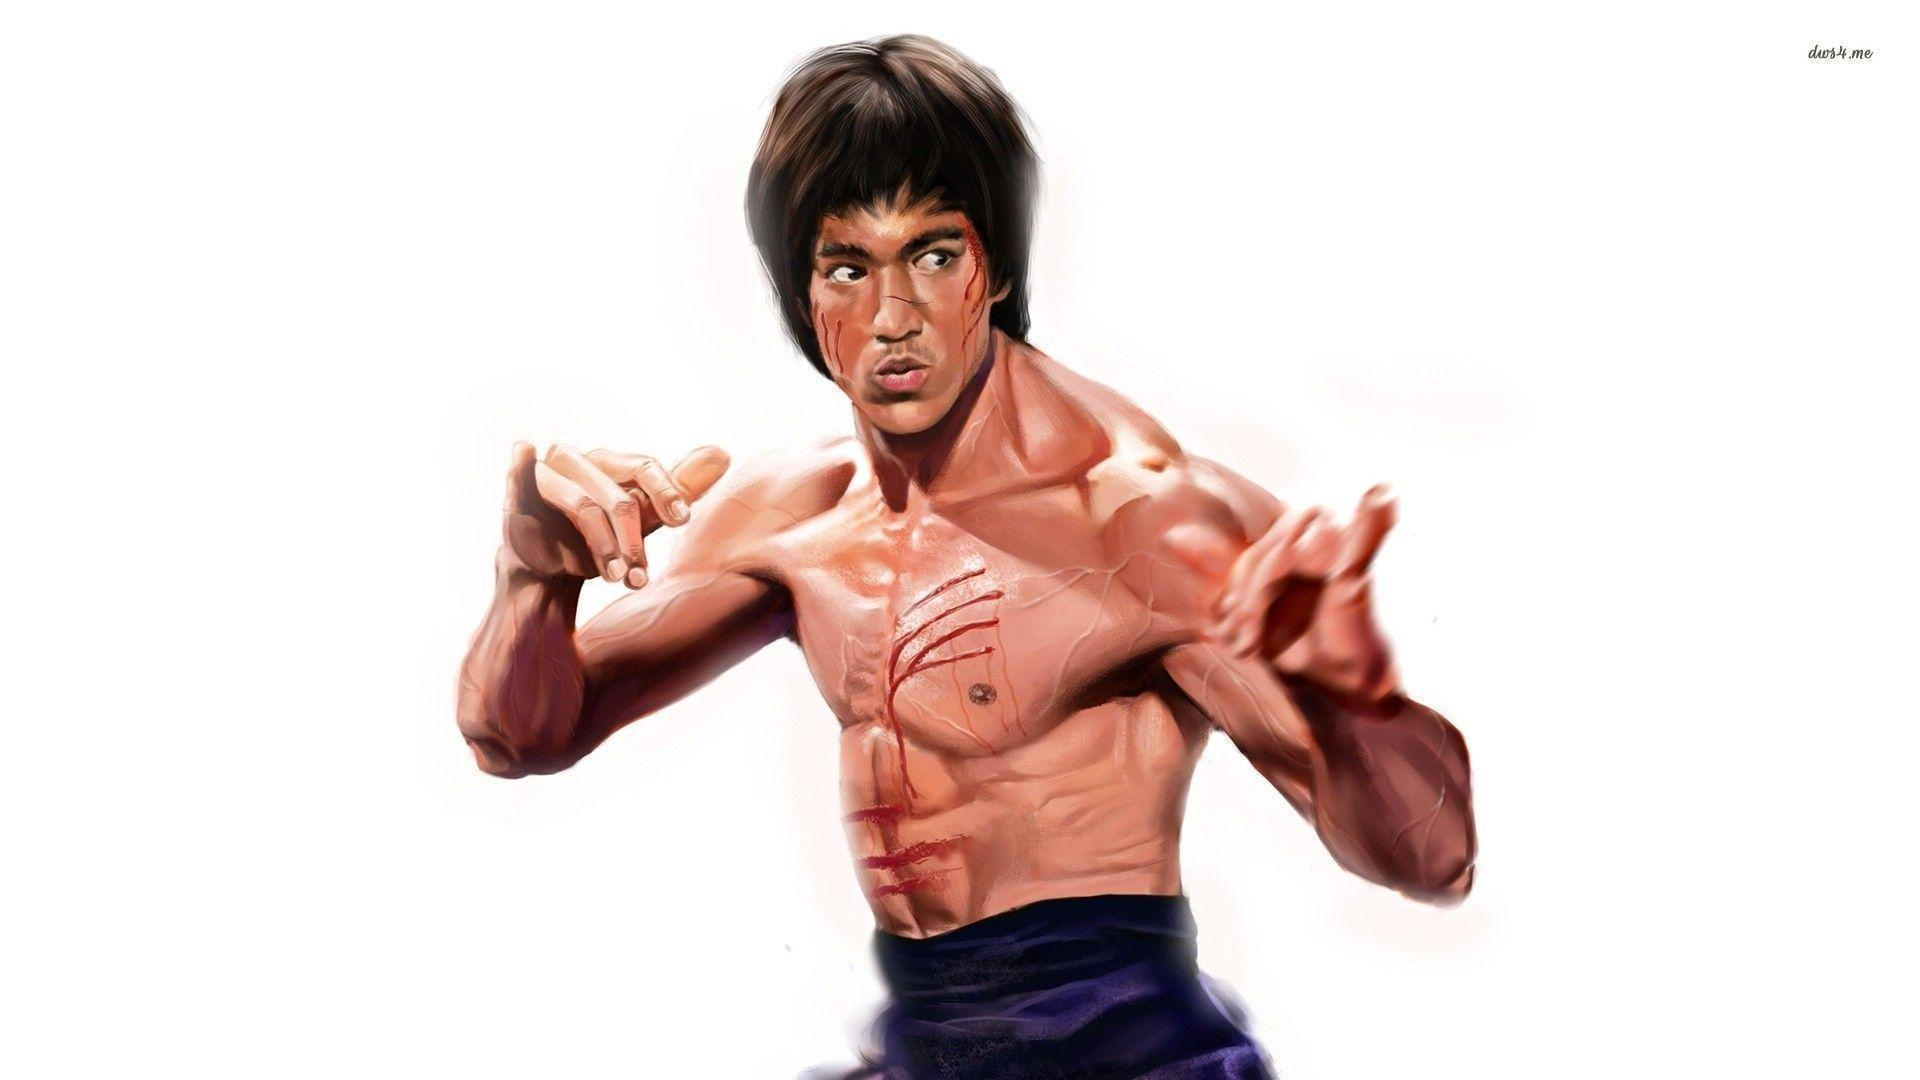 2560x1600 bruce lee desktop - photo #29